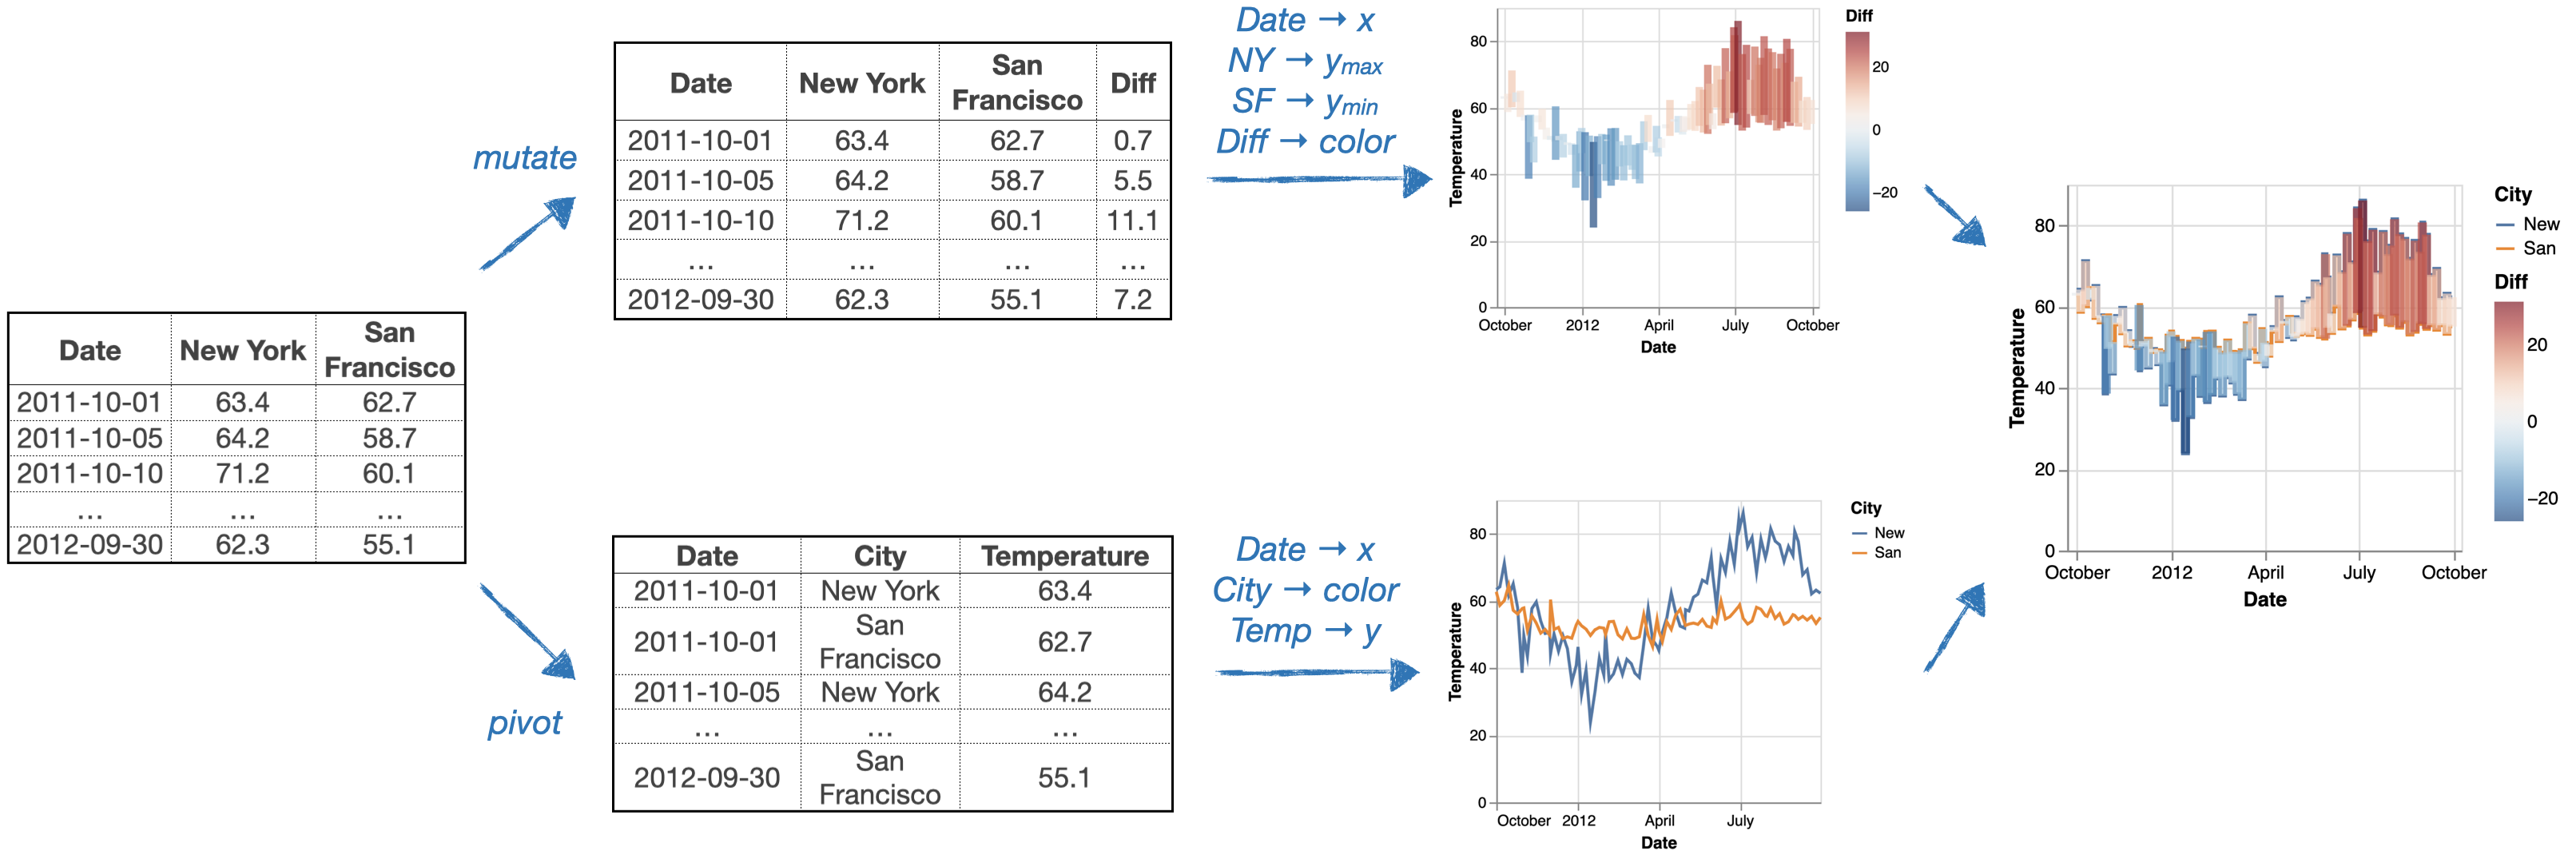 In order to create the final visualization, we need to: mutate the input data to calculate the temperature differences map it to a floating bar chart, pivot the table and map it to a colored line chart, and combine the two layers together.